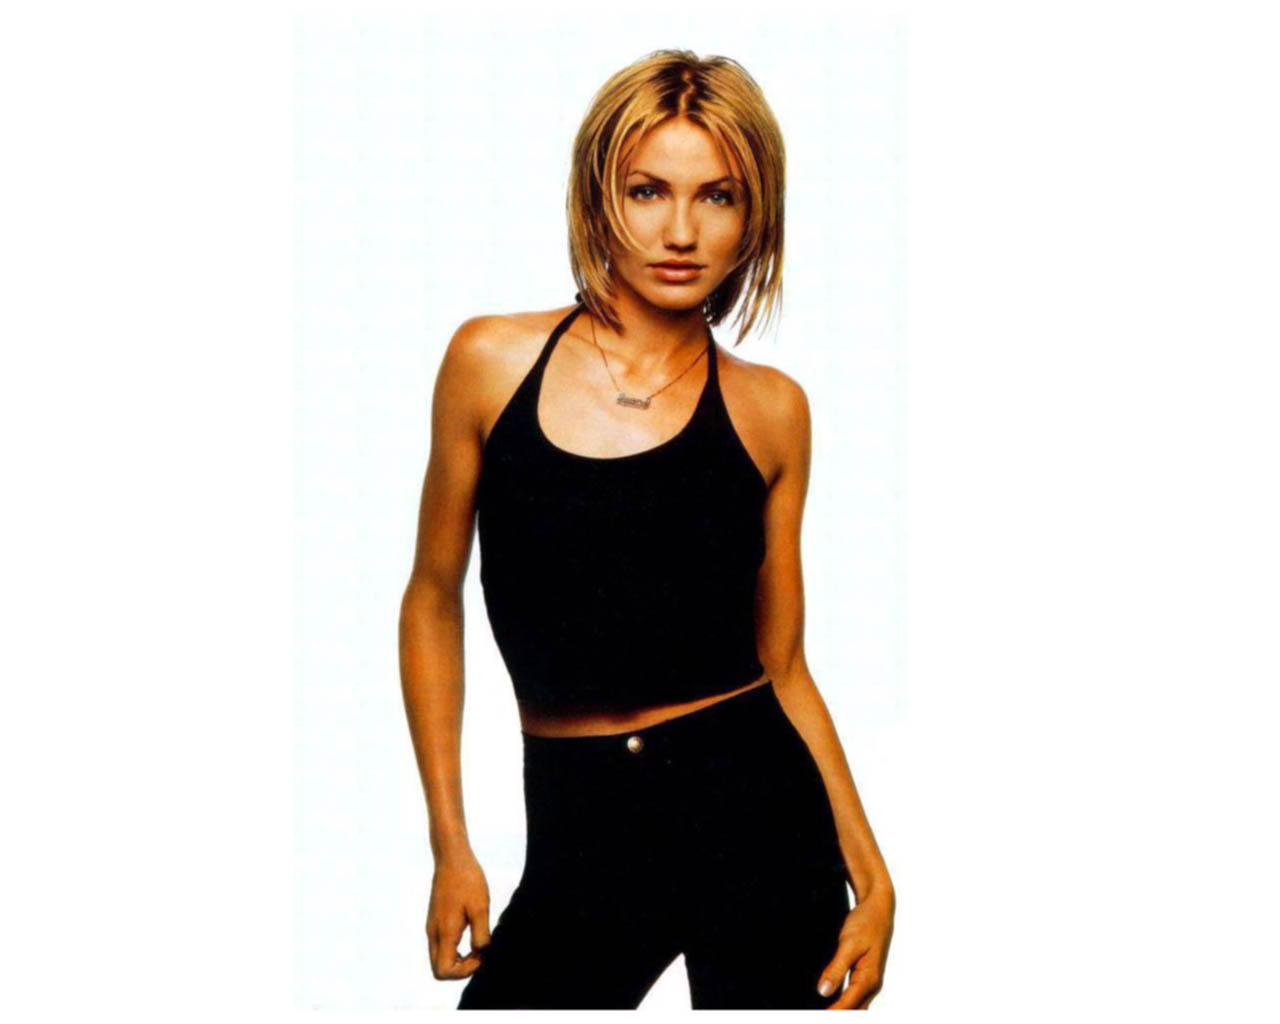 Cameron Diaz Desktop Wallpapers for Widescreen HD 1280x1024